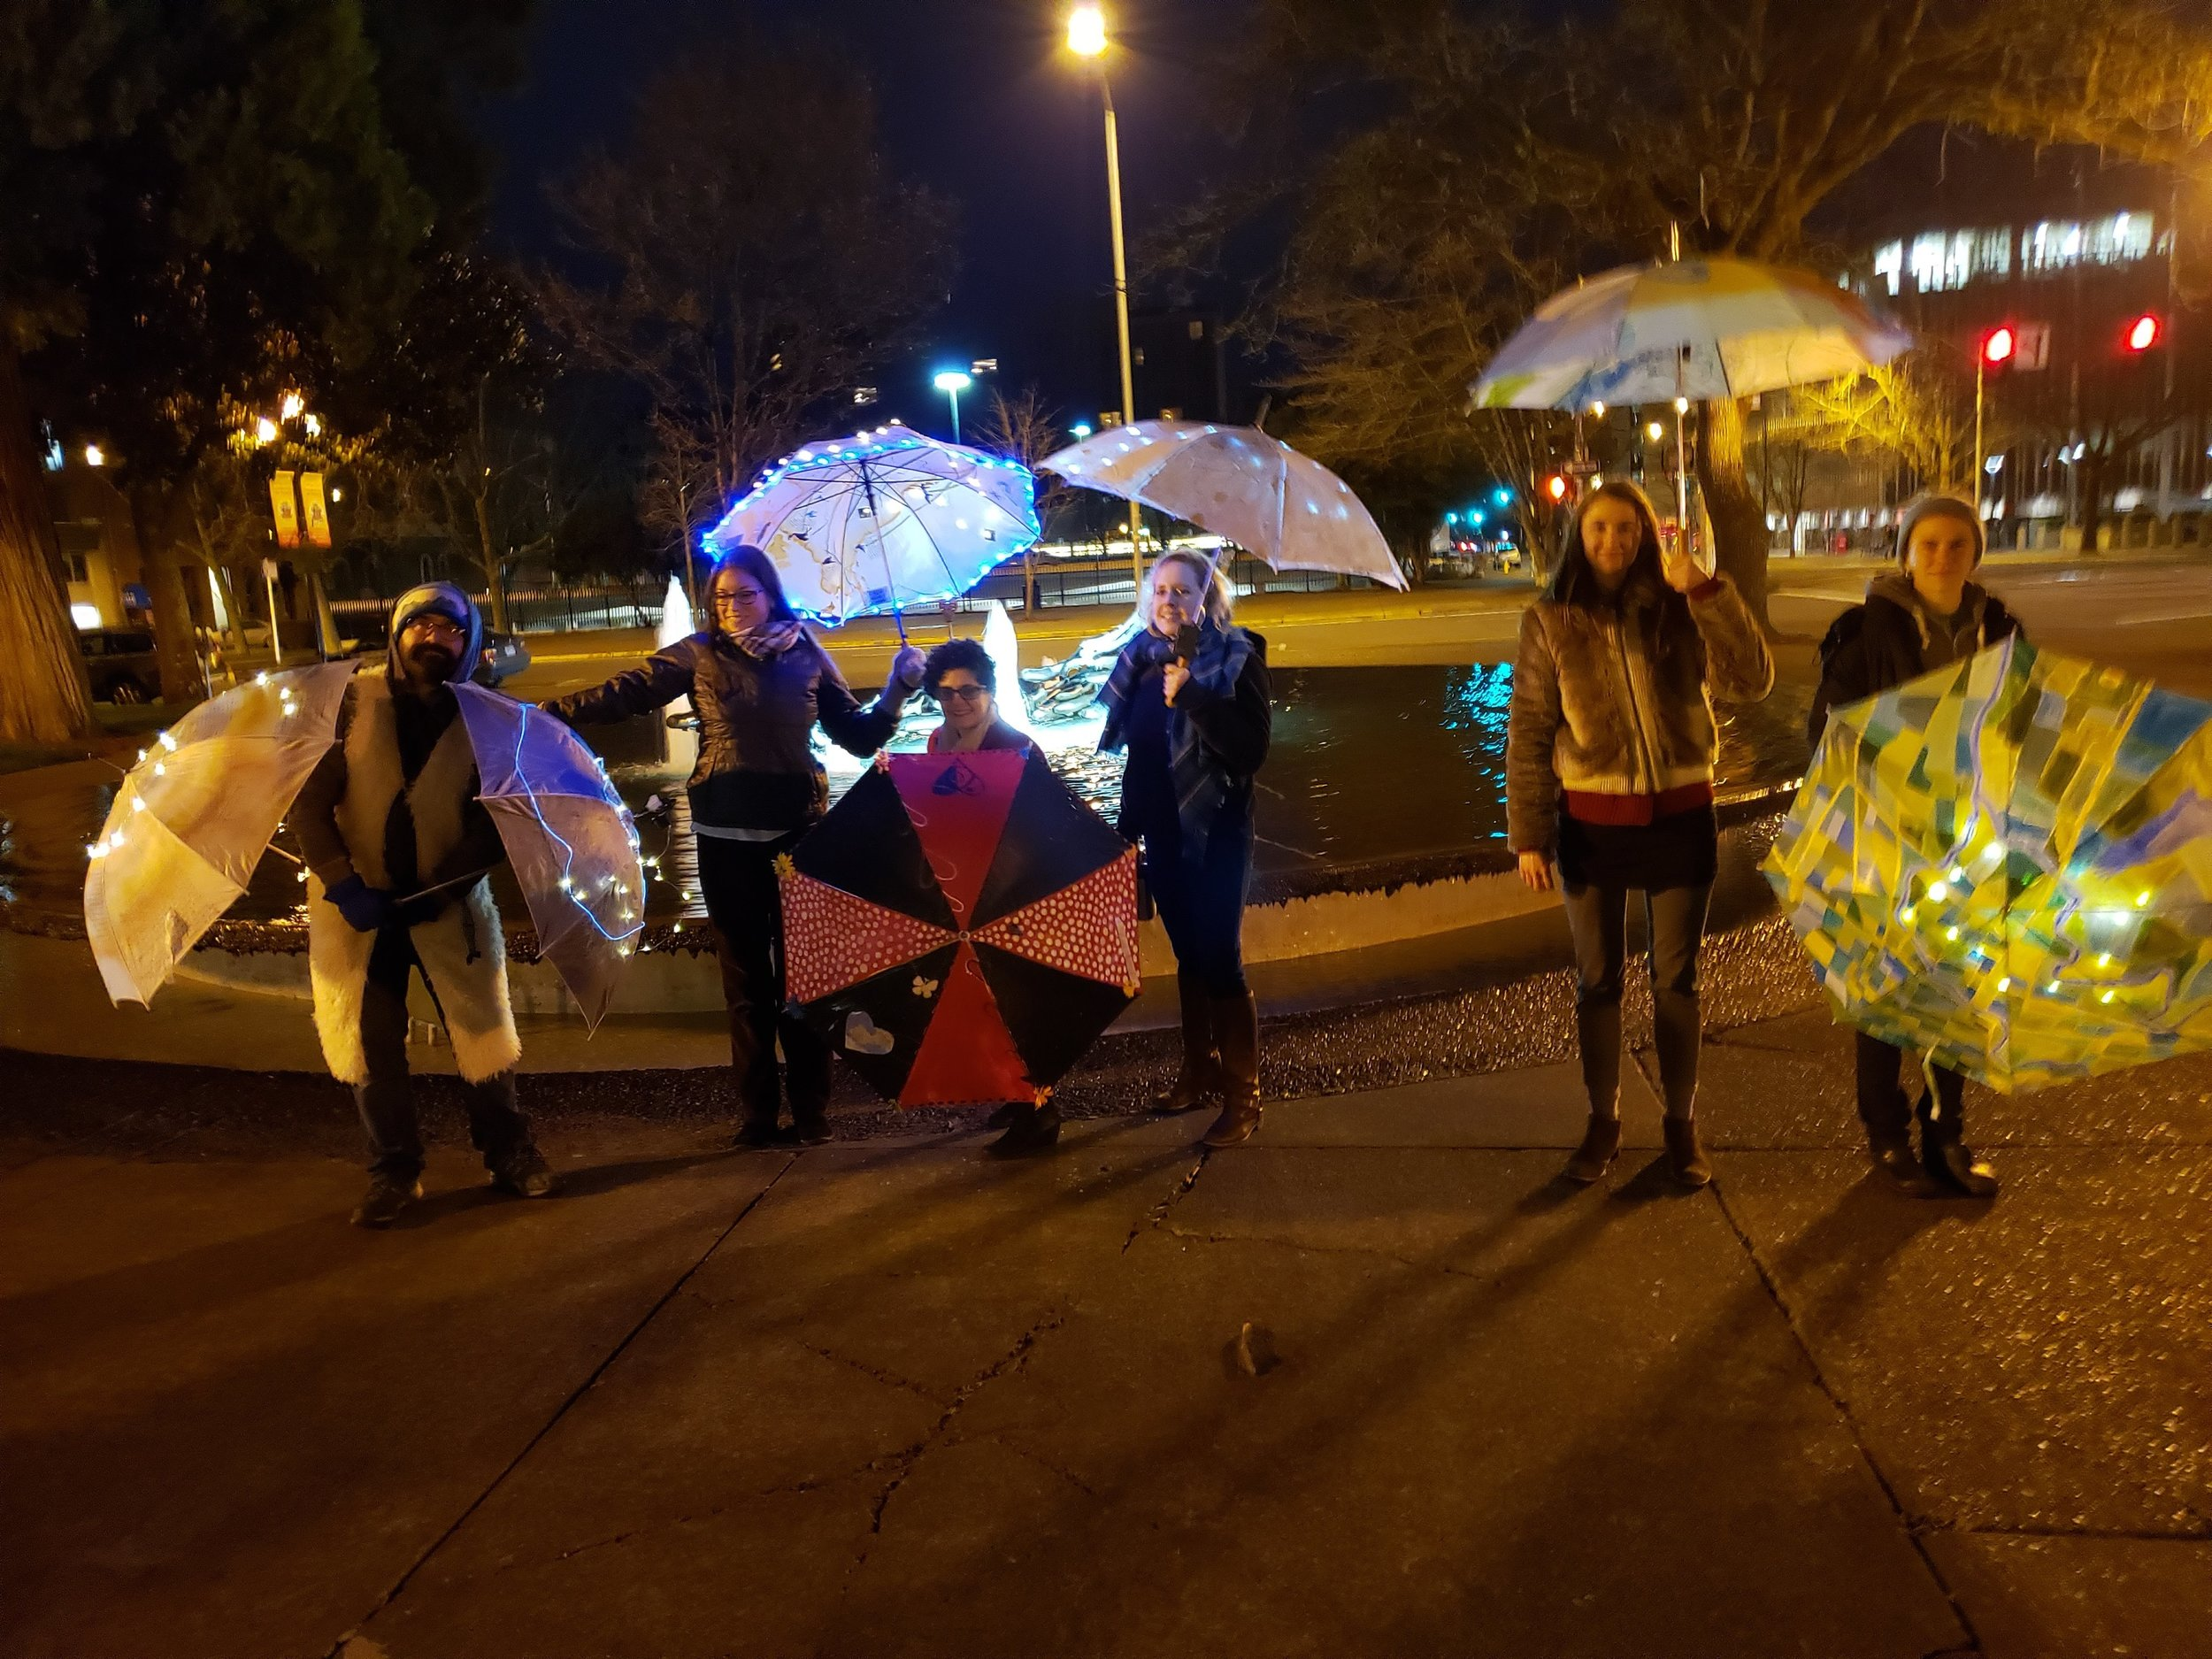 Wanderlust Umbrella Project ArtCity   February 19th, 2019  The Umbrella Project embraces the rain and the darkness of winter by illuminating and transforming Downtown Eugene with an ever-changing display of live, time-based art.  The Umbrella Project is presented by ArtCity Eugene and  Cultural Services, City of Eugene.      Upcoming     Umbrella Project     Appearances    Wanderlust  February 19, 5:50-6:50 pm   Nimbus  February 20, 5:50-6:50 pm   Zoe Troupe  February 22, 5:50-6:50 pm   Vanessa Fuller Dance  February 25, 5:50-6:50 pm   David CP & Apprentices  February 26, 5:50-6:50 pm   Vanessa Fuller Dance  February 27, 5:50-6:50 pm   The Umbrella Auction  March 1, 6:30-7:30 pm  / Kesey Square    Keep an eye out for your favorite umbrella. All umbrellas will be auctioned on Friday, March 1 in Kesey Square during the First Friday ArtWalk. Umbrella proceeds will benefit    15th Night   , participating artists, and ArtCity Eugene (40-40-20)